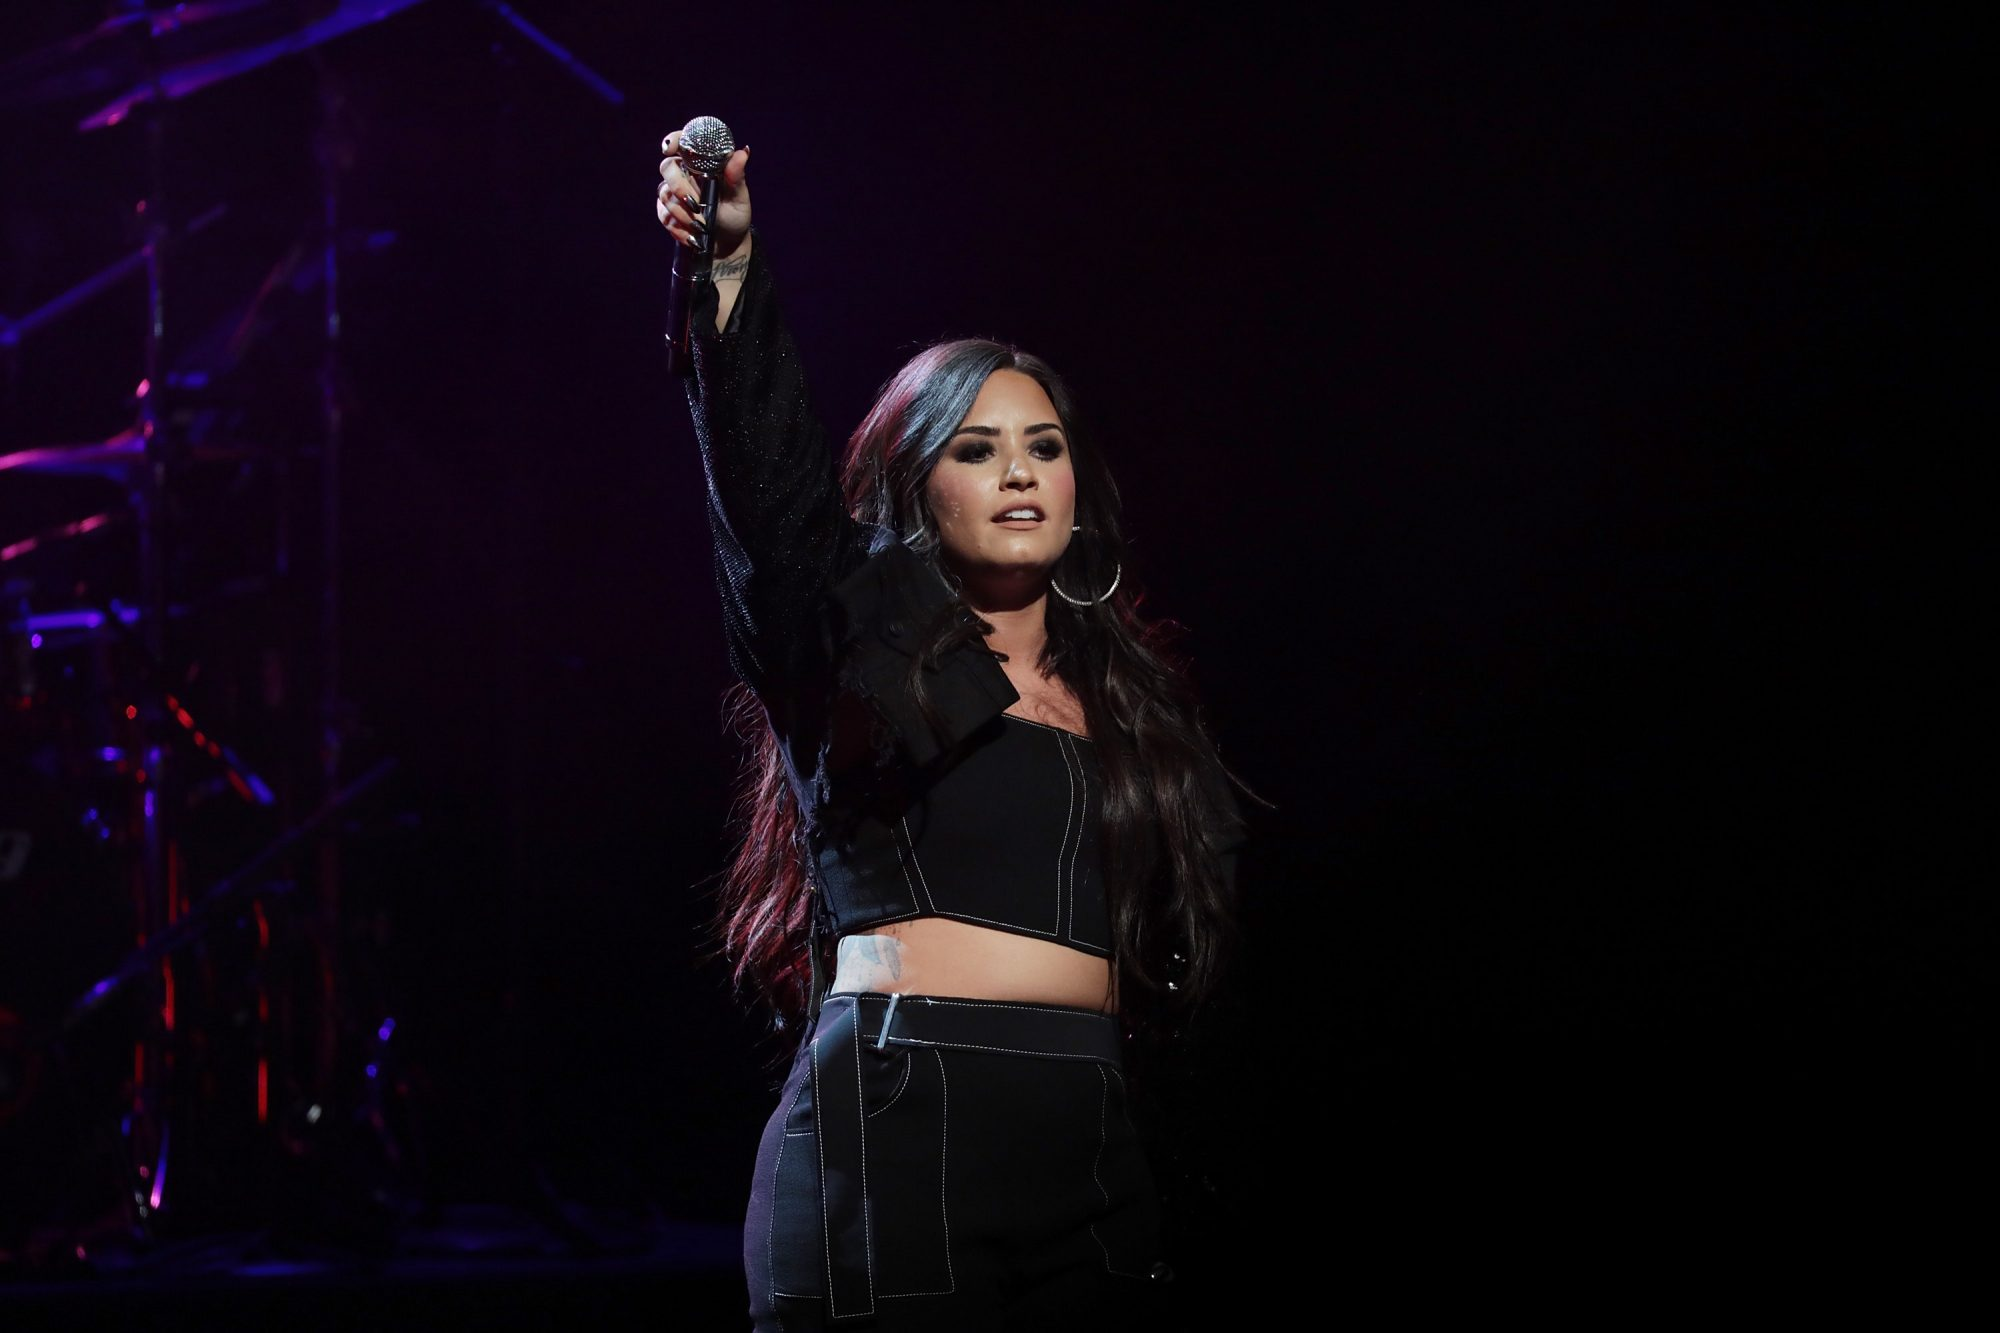 Demi Lovato Tells Fans It's Time to End the Stigma Surrounding Mental Illness